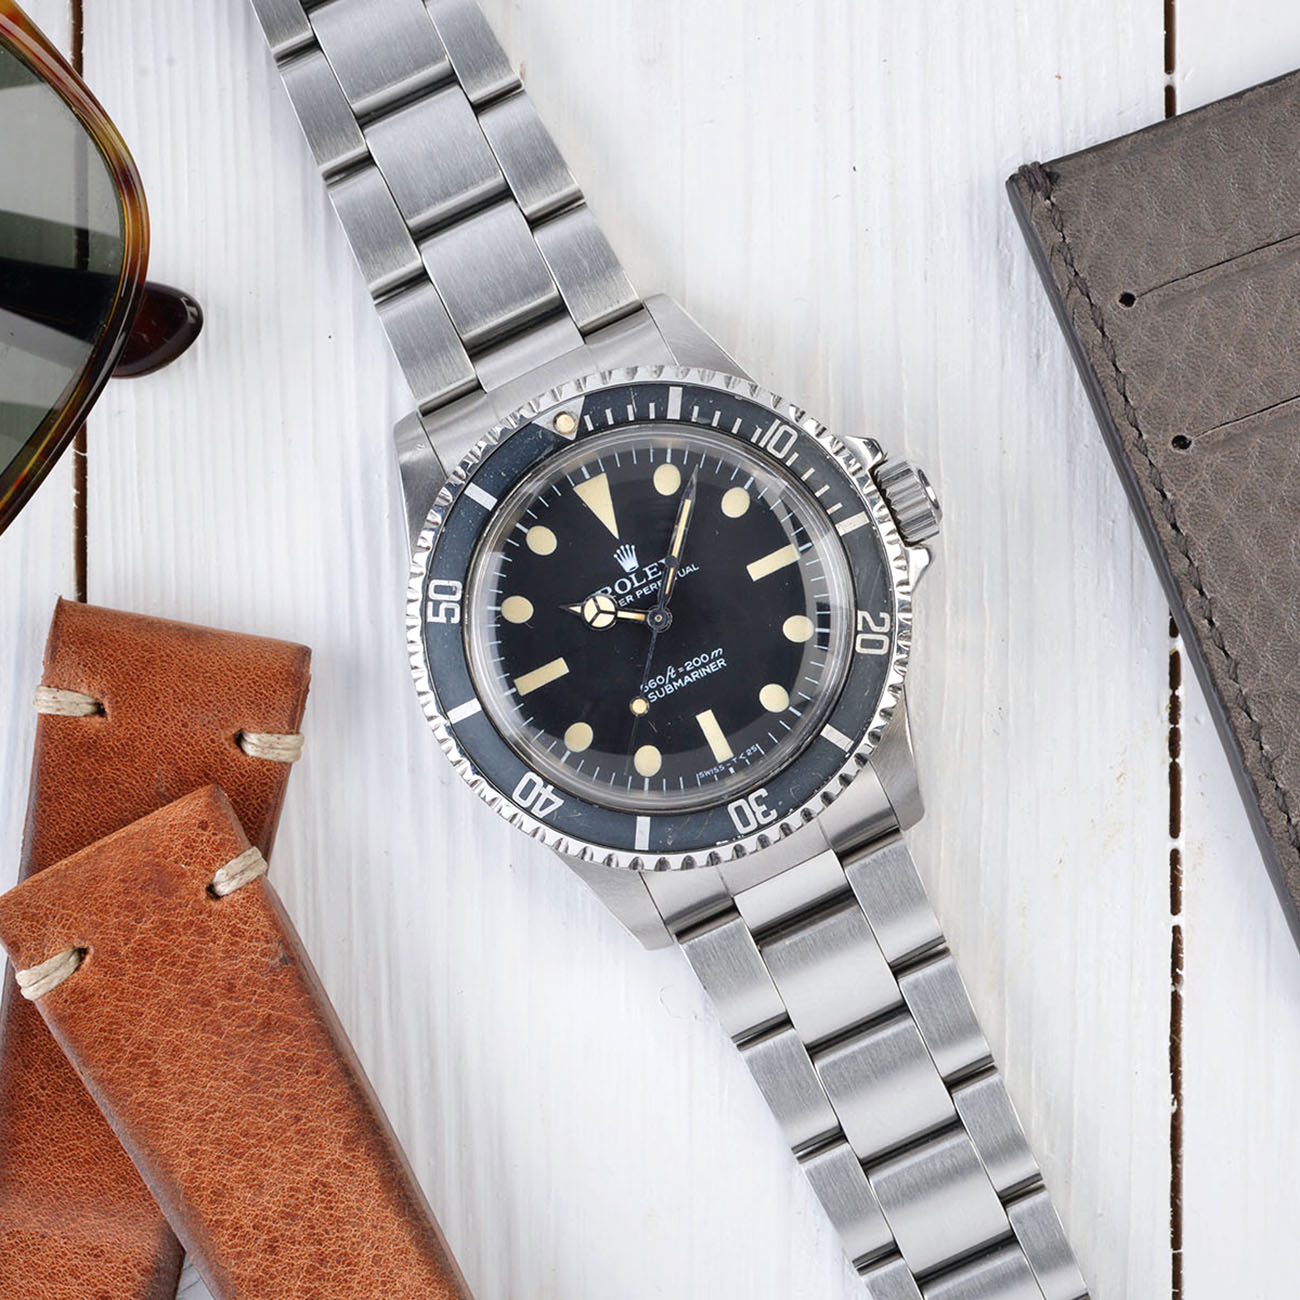 Vintage Rolex 5513 Submariner Love - Article at Bulang and Sons - Pre COMEX Dial